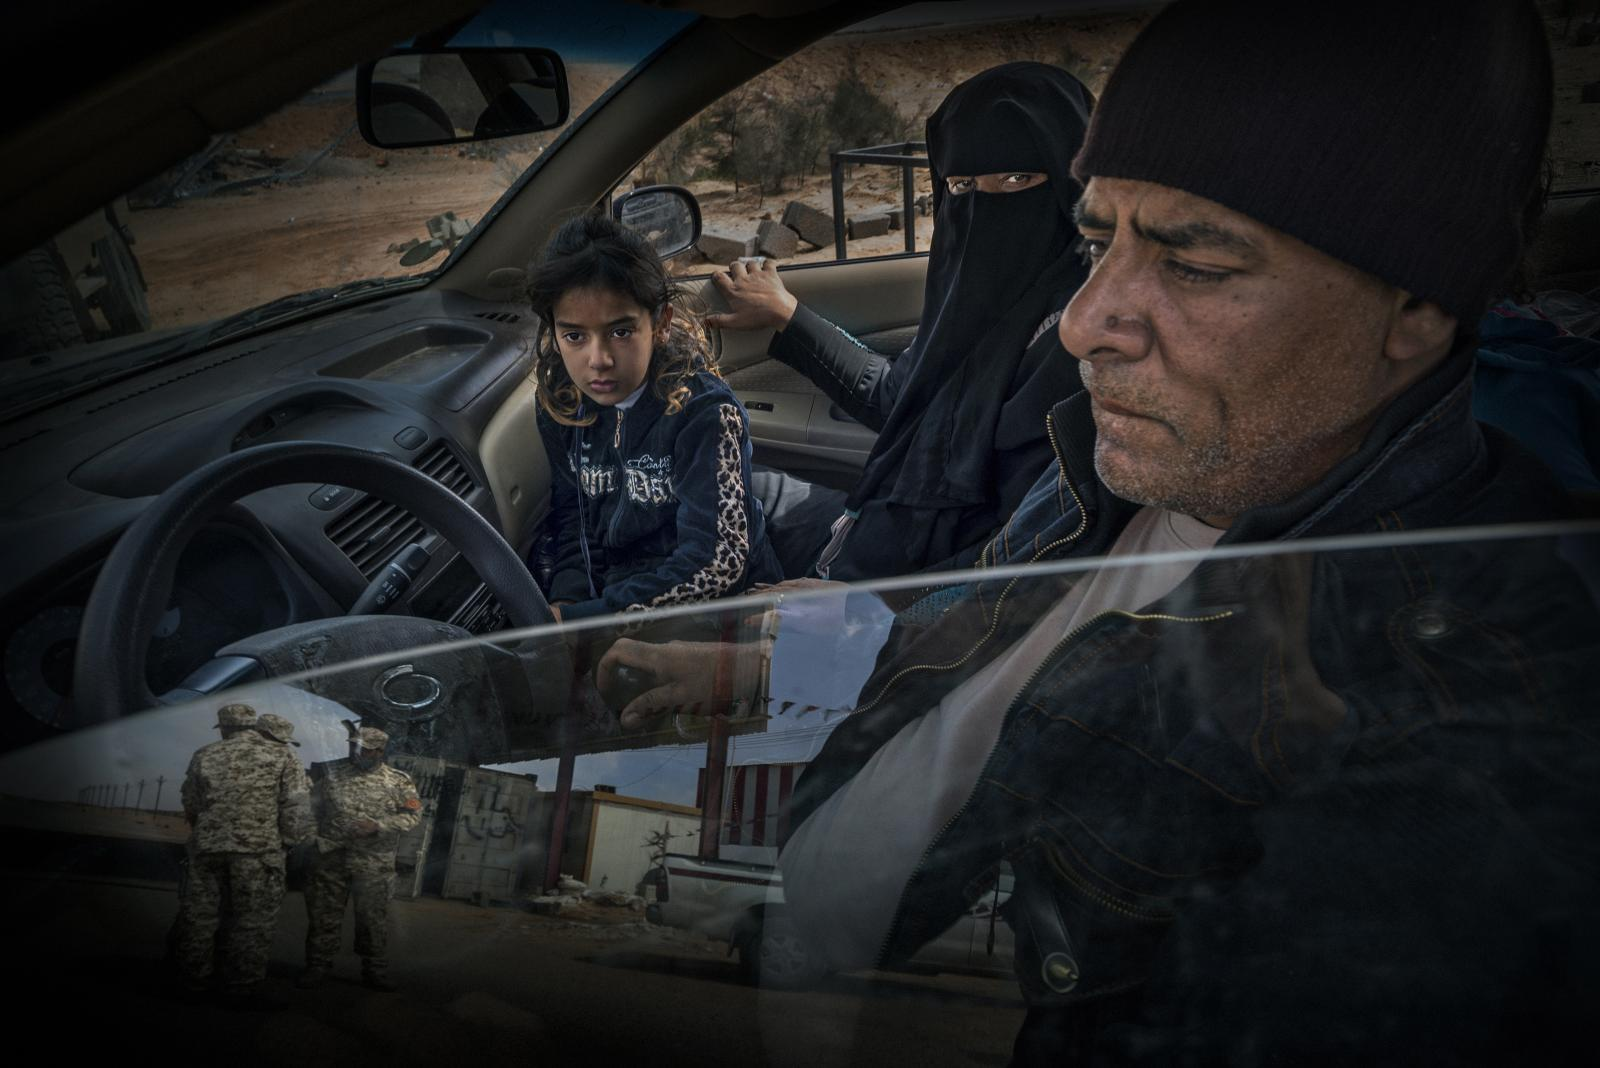 Family inside a car coming from Sirte, a city at that time controlled by ISIS. In the image, the military police checkpoint and Brigade 166, in Abu Qurayn, where ISIS launched a coordinated attack with the Albagla point, and which signalled the start of the Sirte campaign, can be seen (2016).